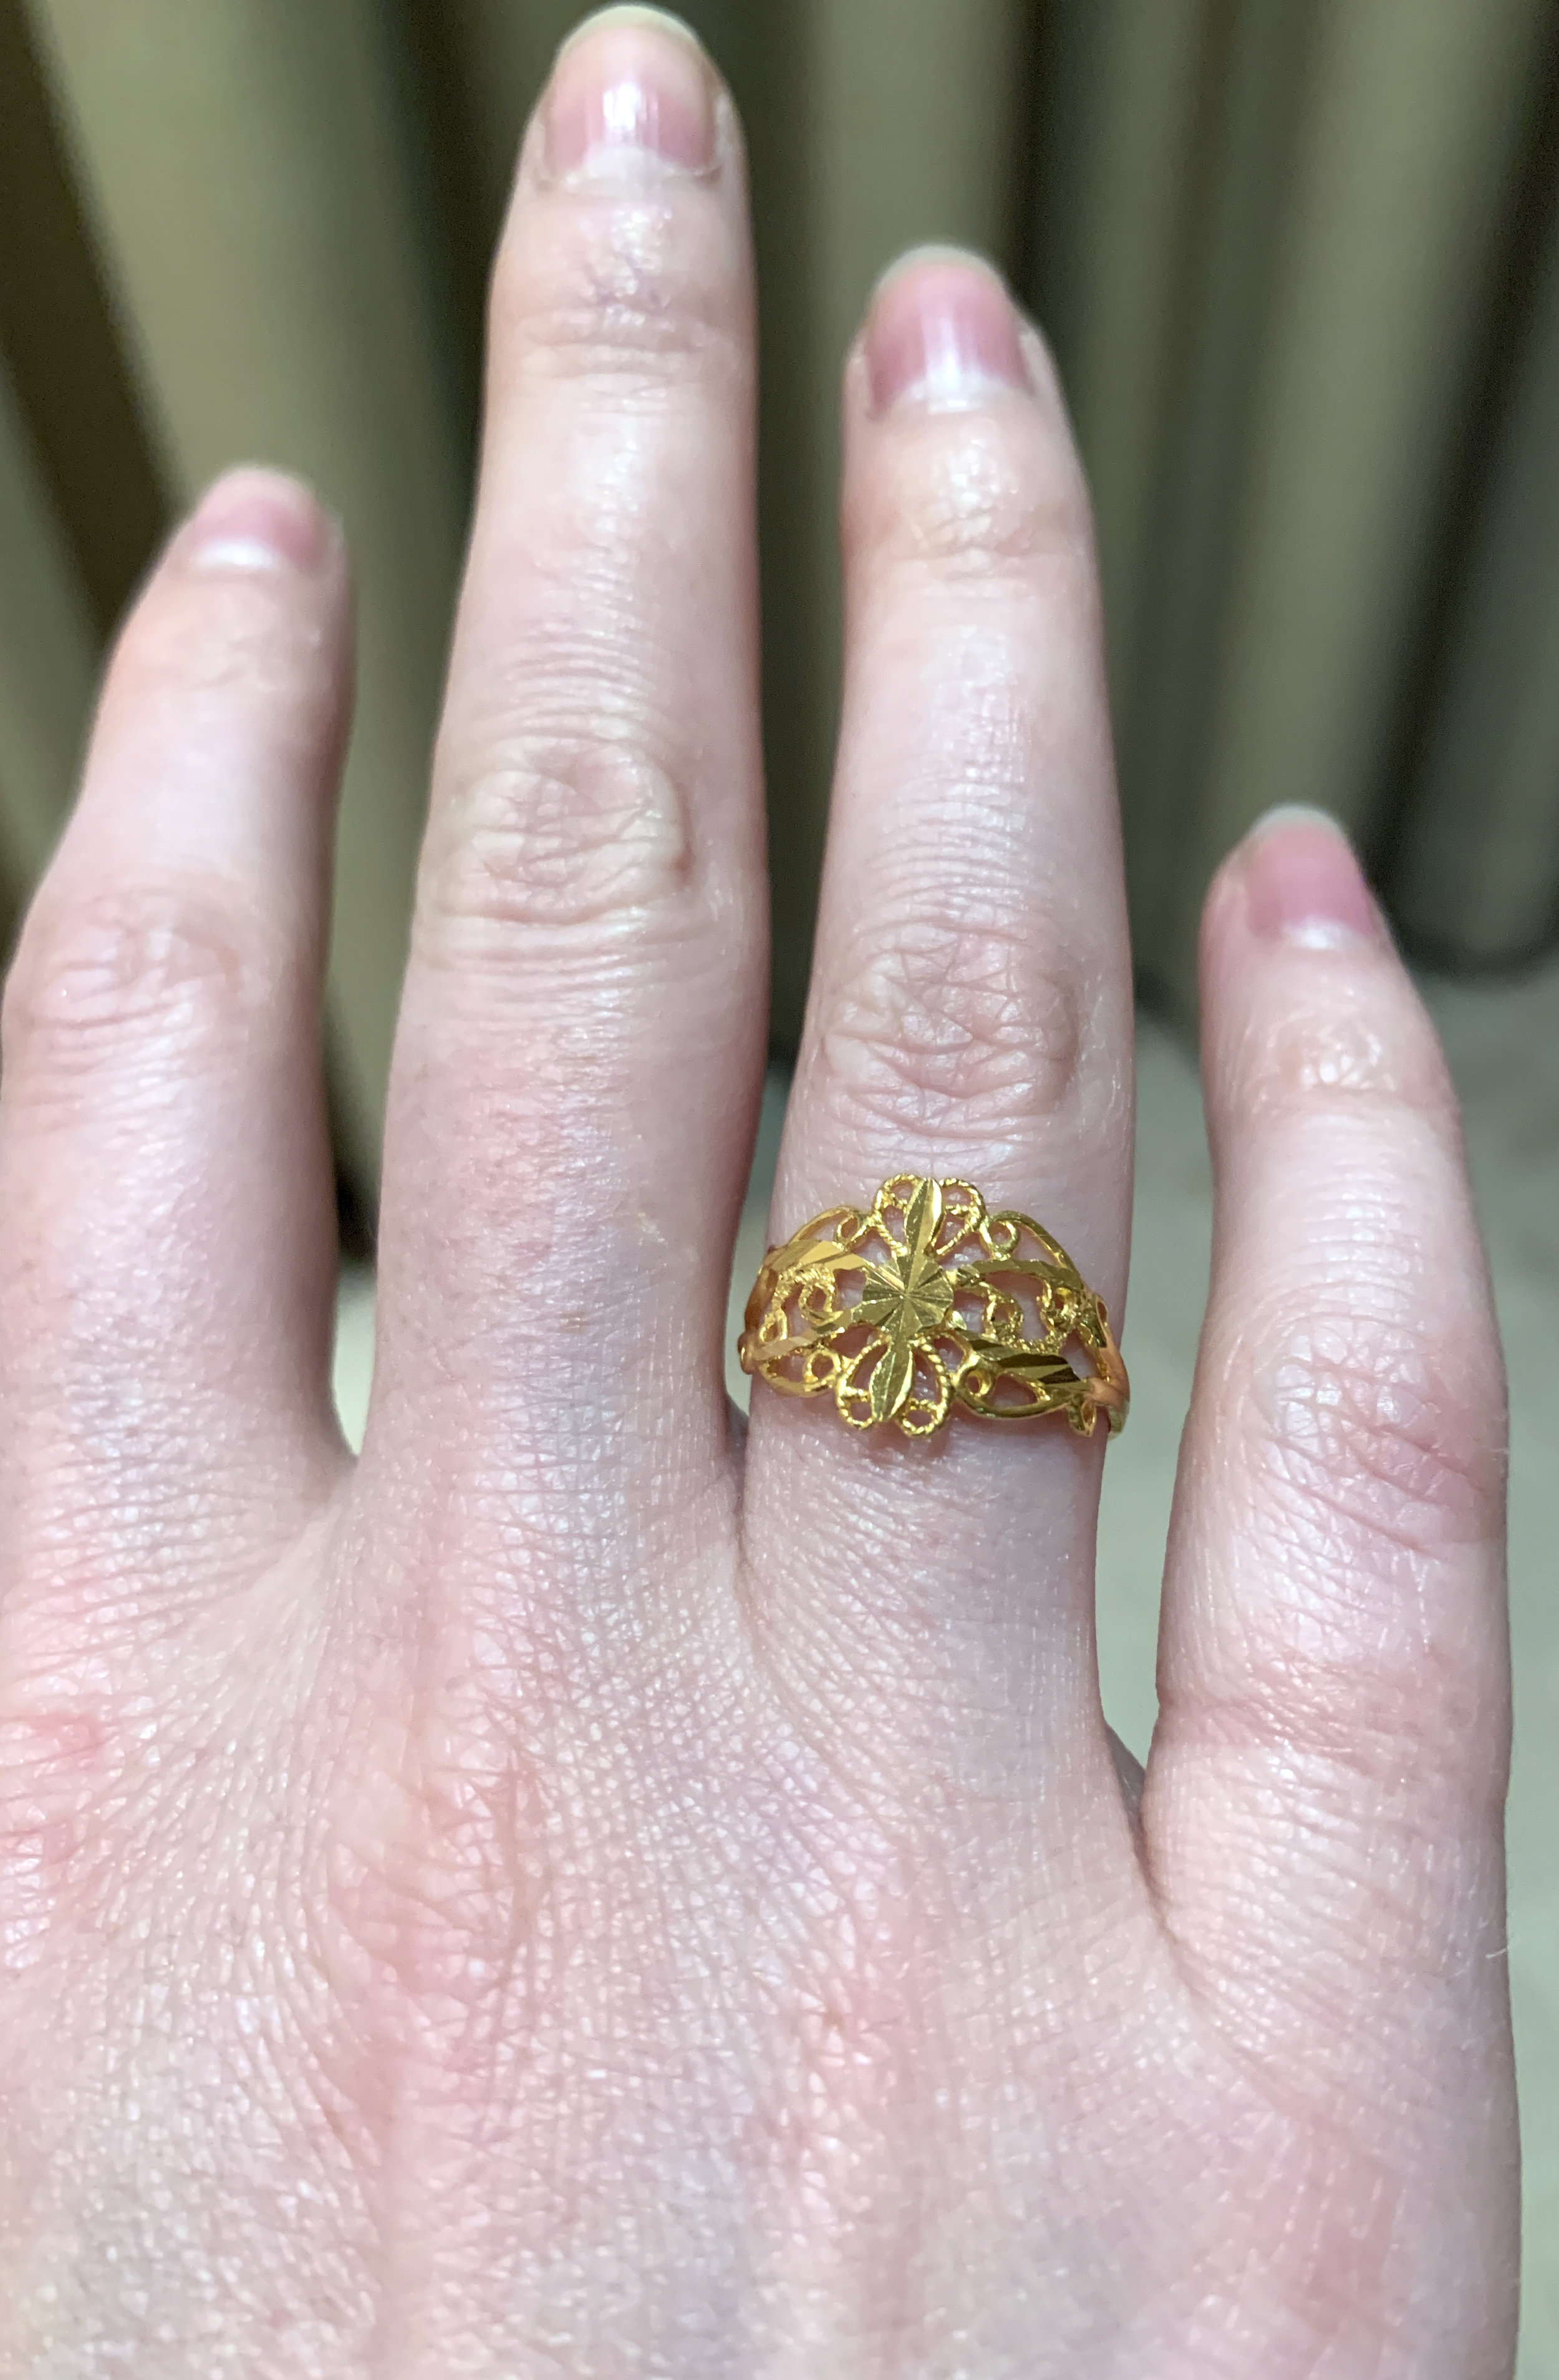 The intricate ring I splurged on.